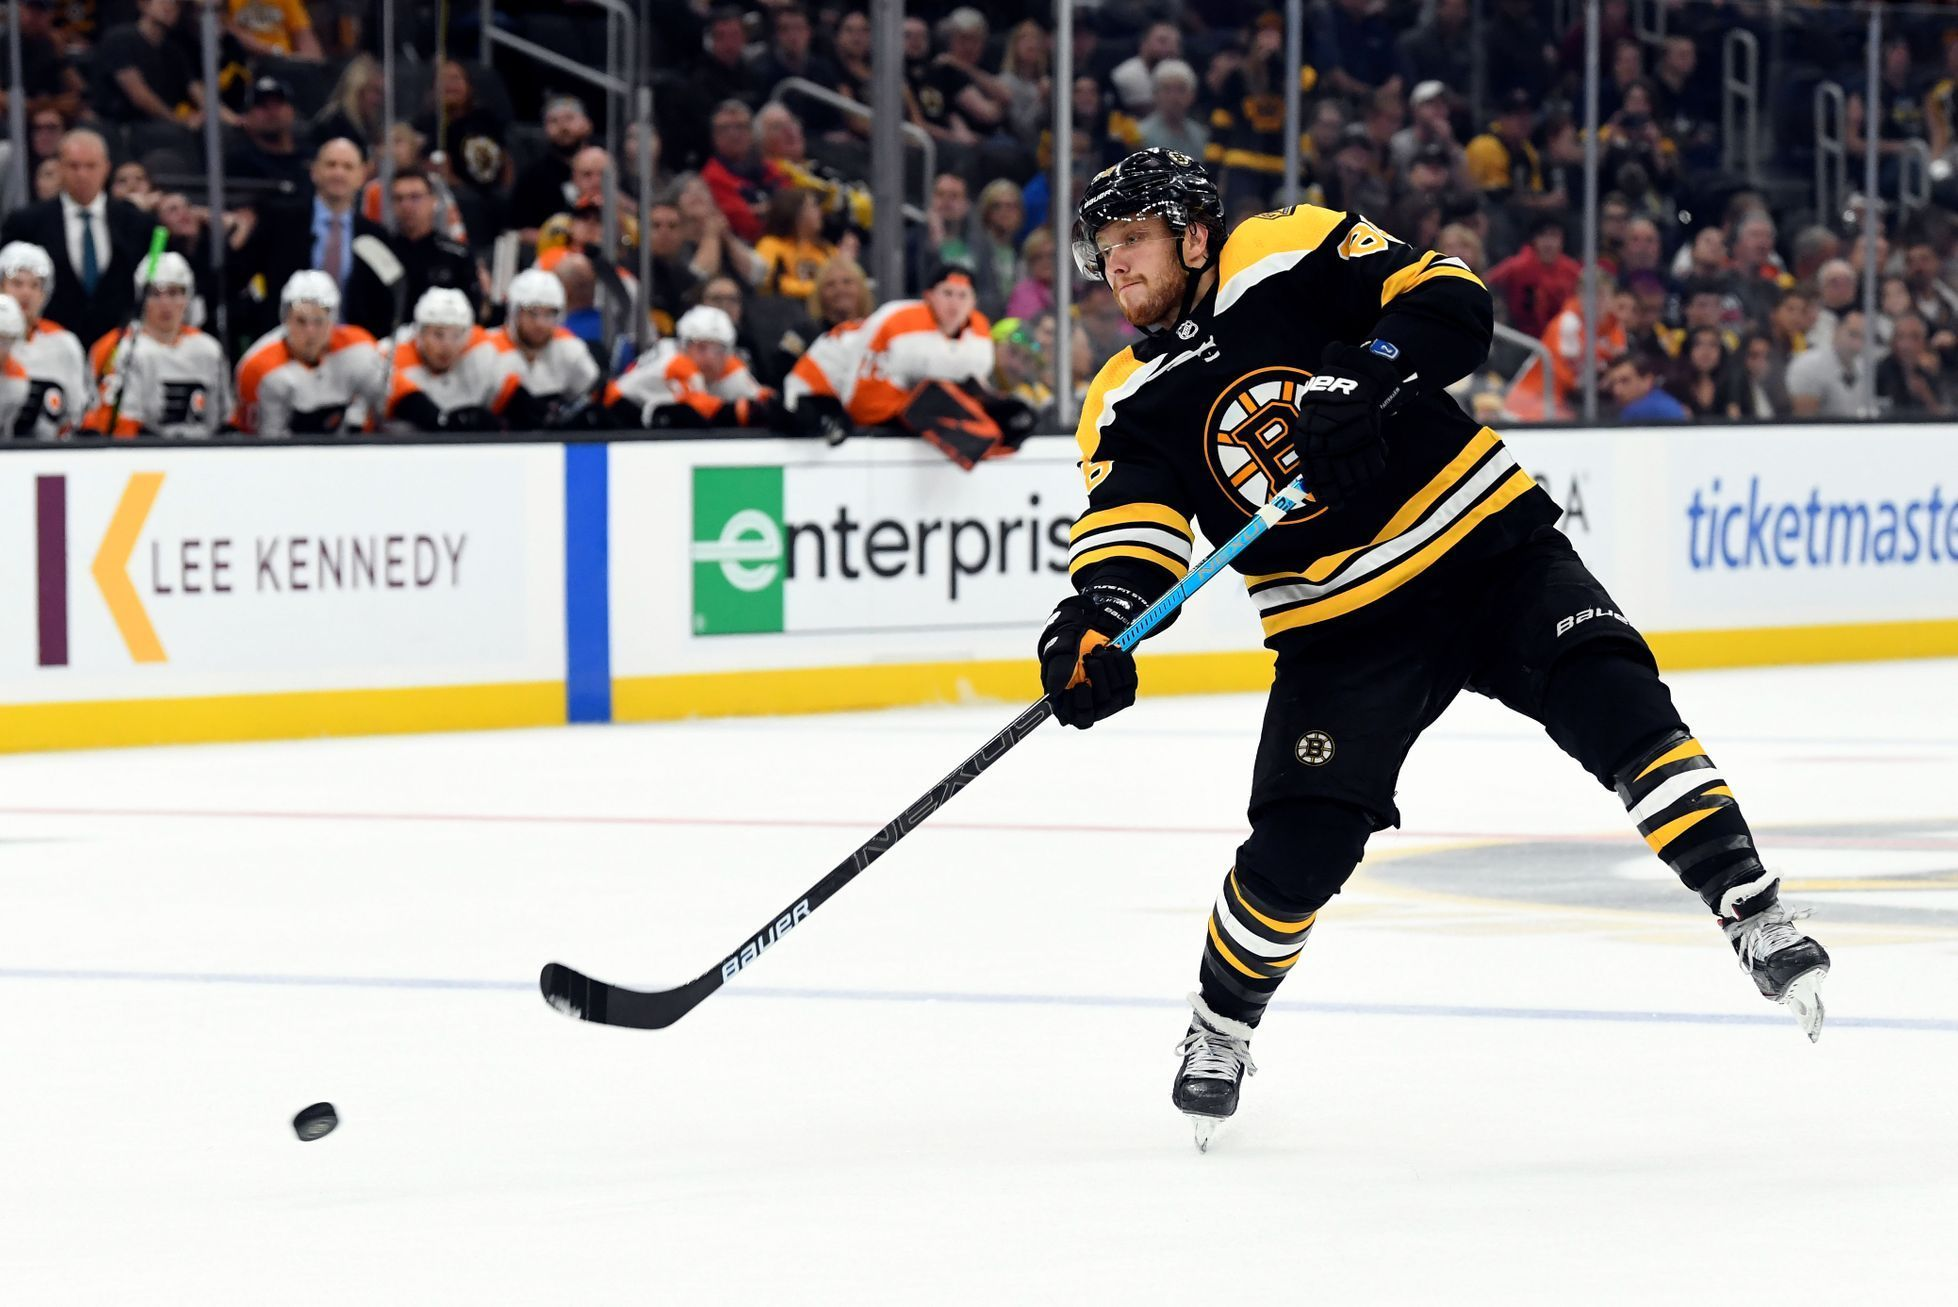 hokej, příprava na NHL 2019/2020, Boston - Philadelphia, David Pastrňák